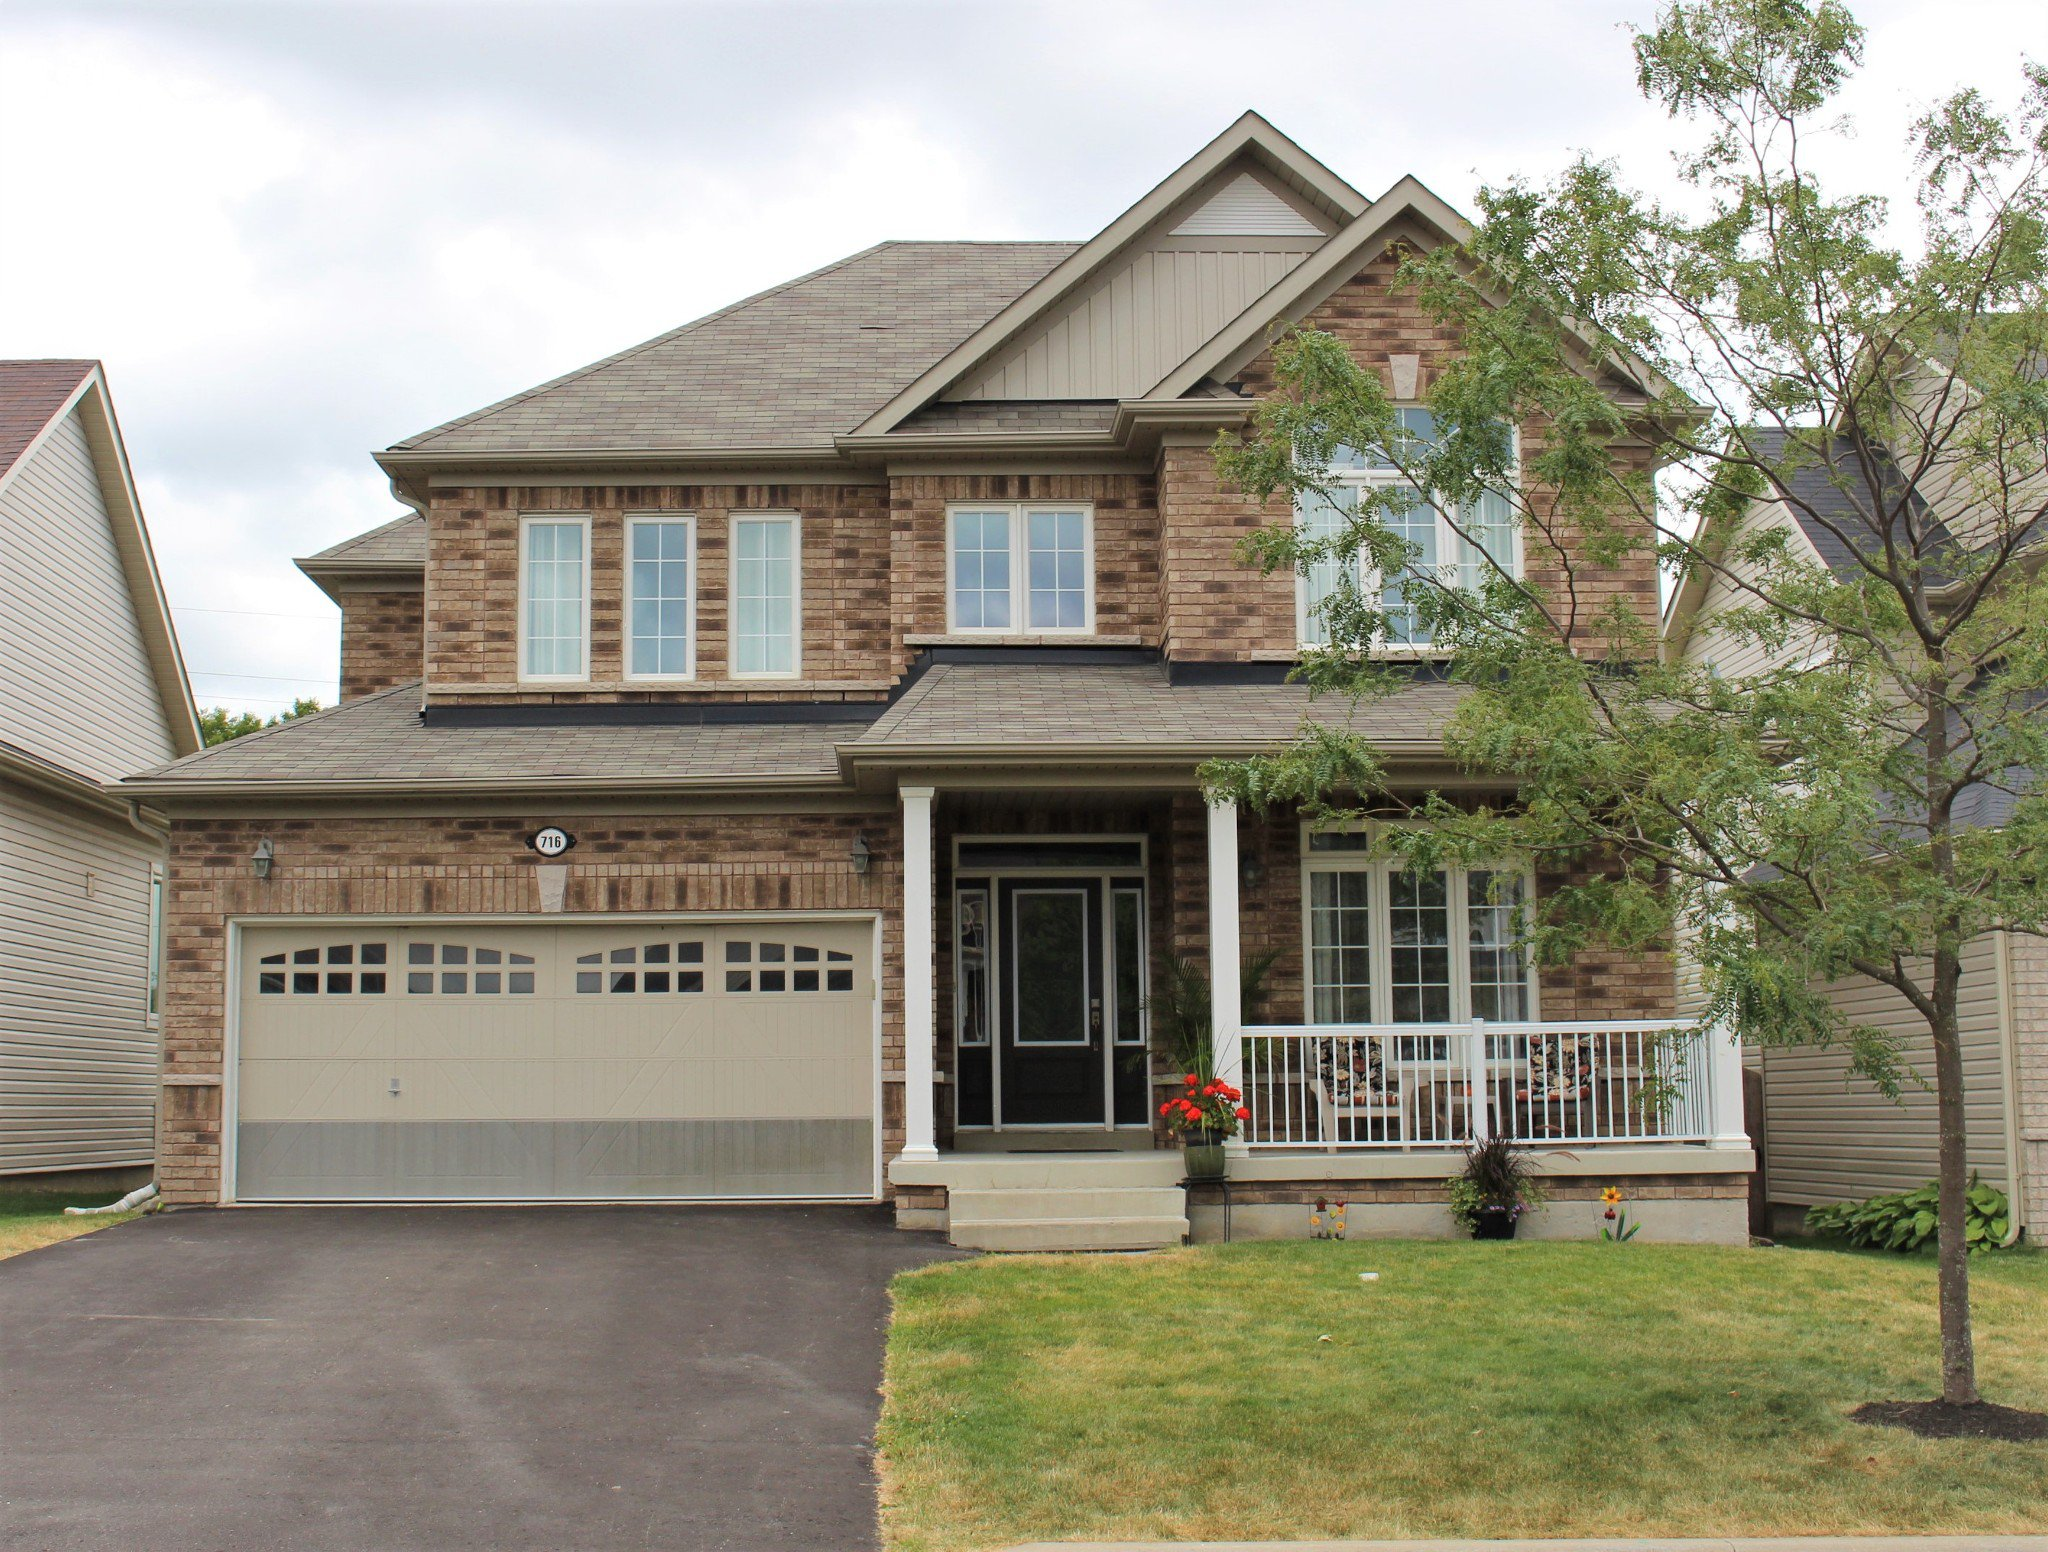 Main Photo: 716 Prince of Wales Drive in Cobourg: Residential Detached for sale : MLS®# 209153